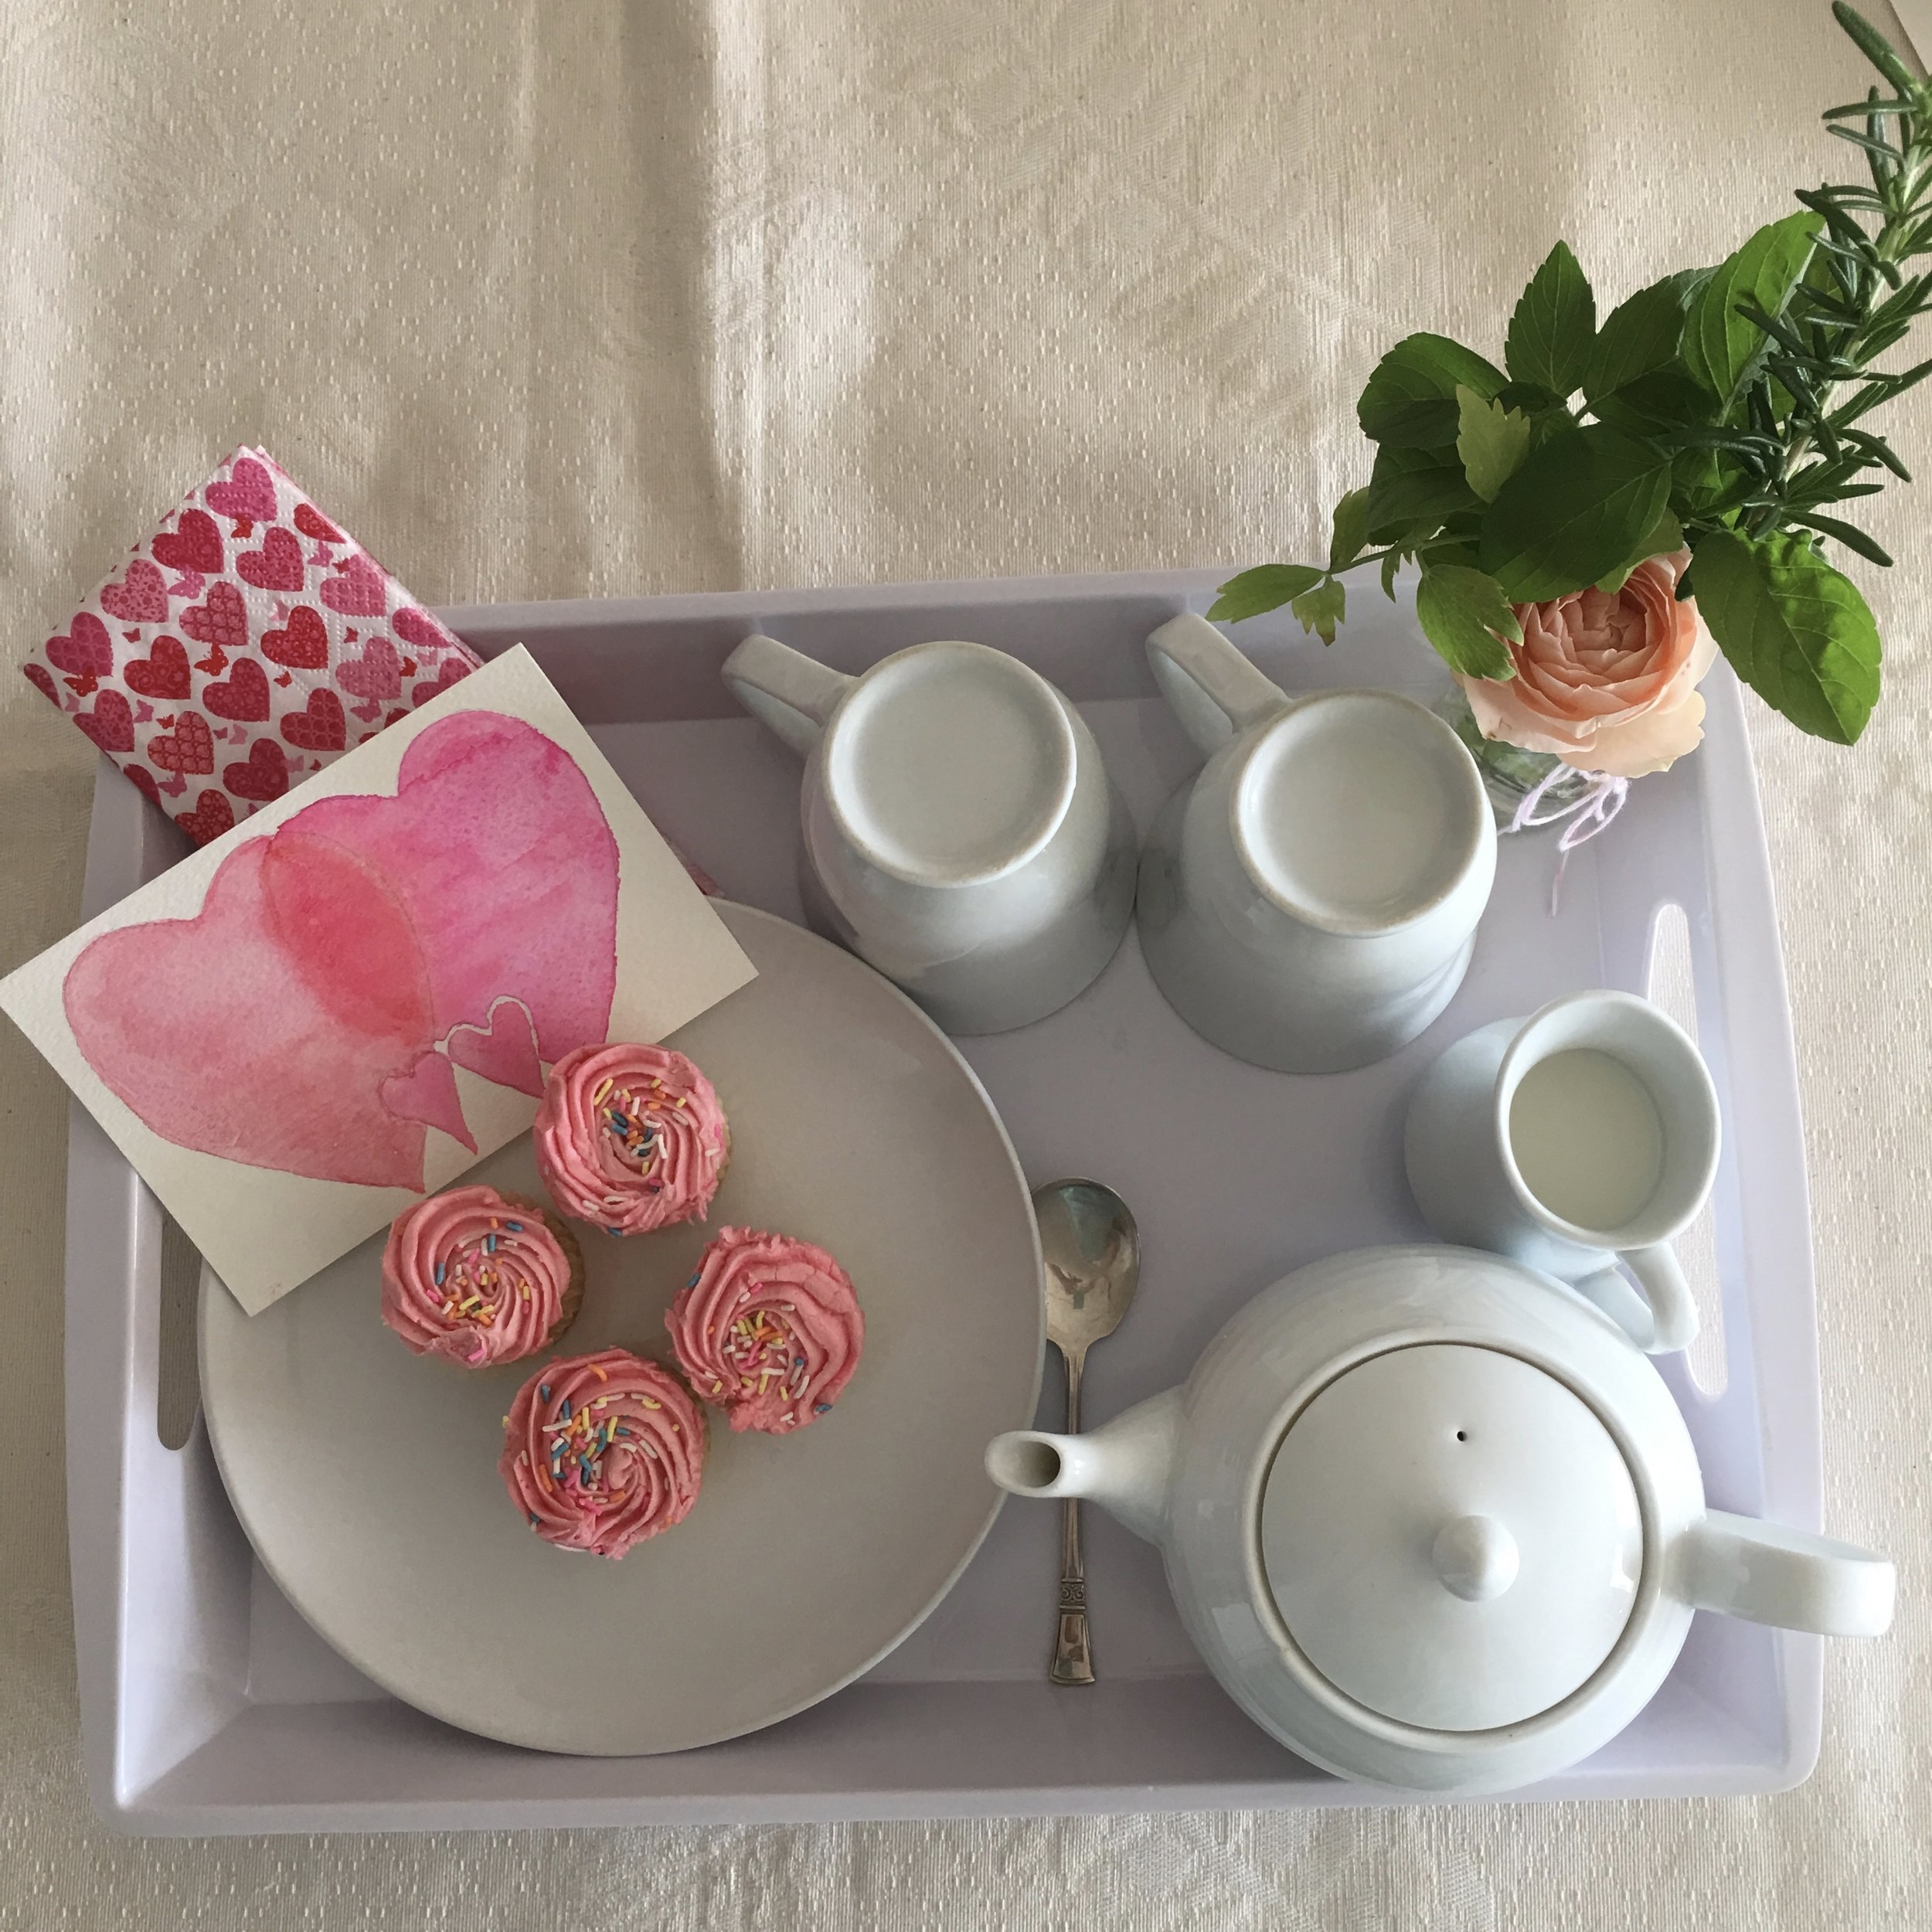 A simple tray